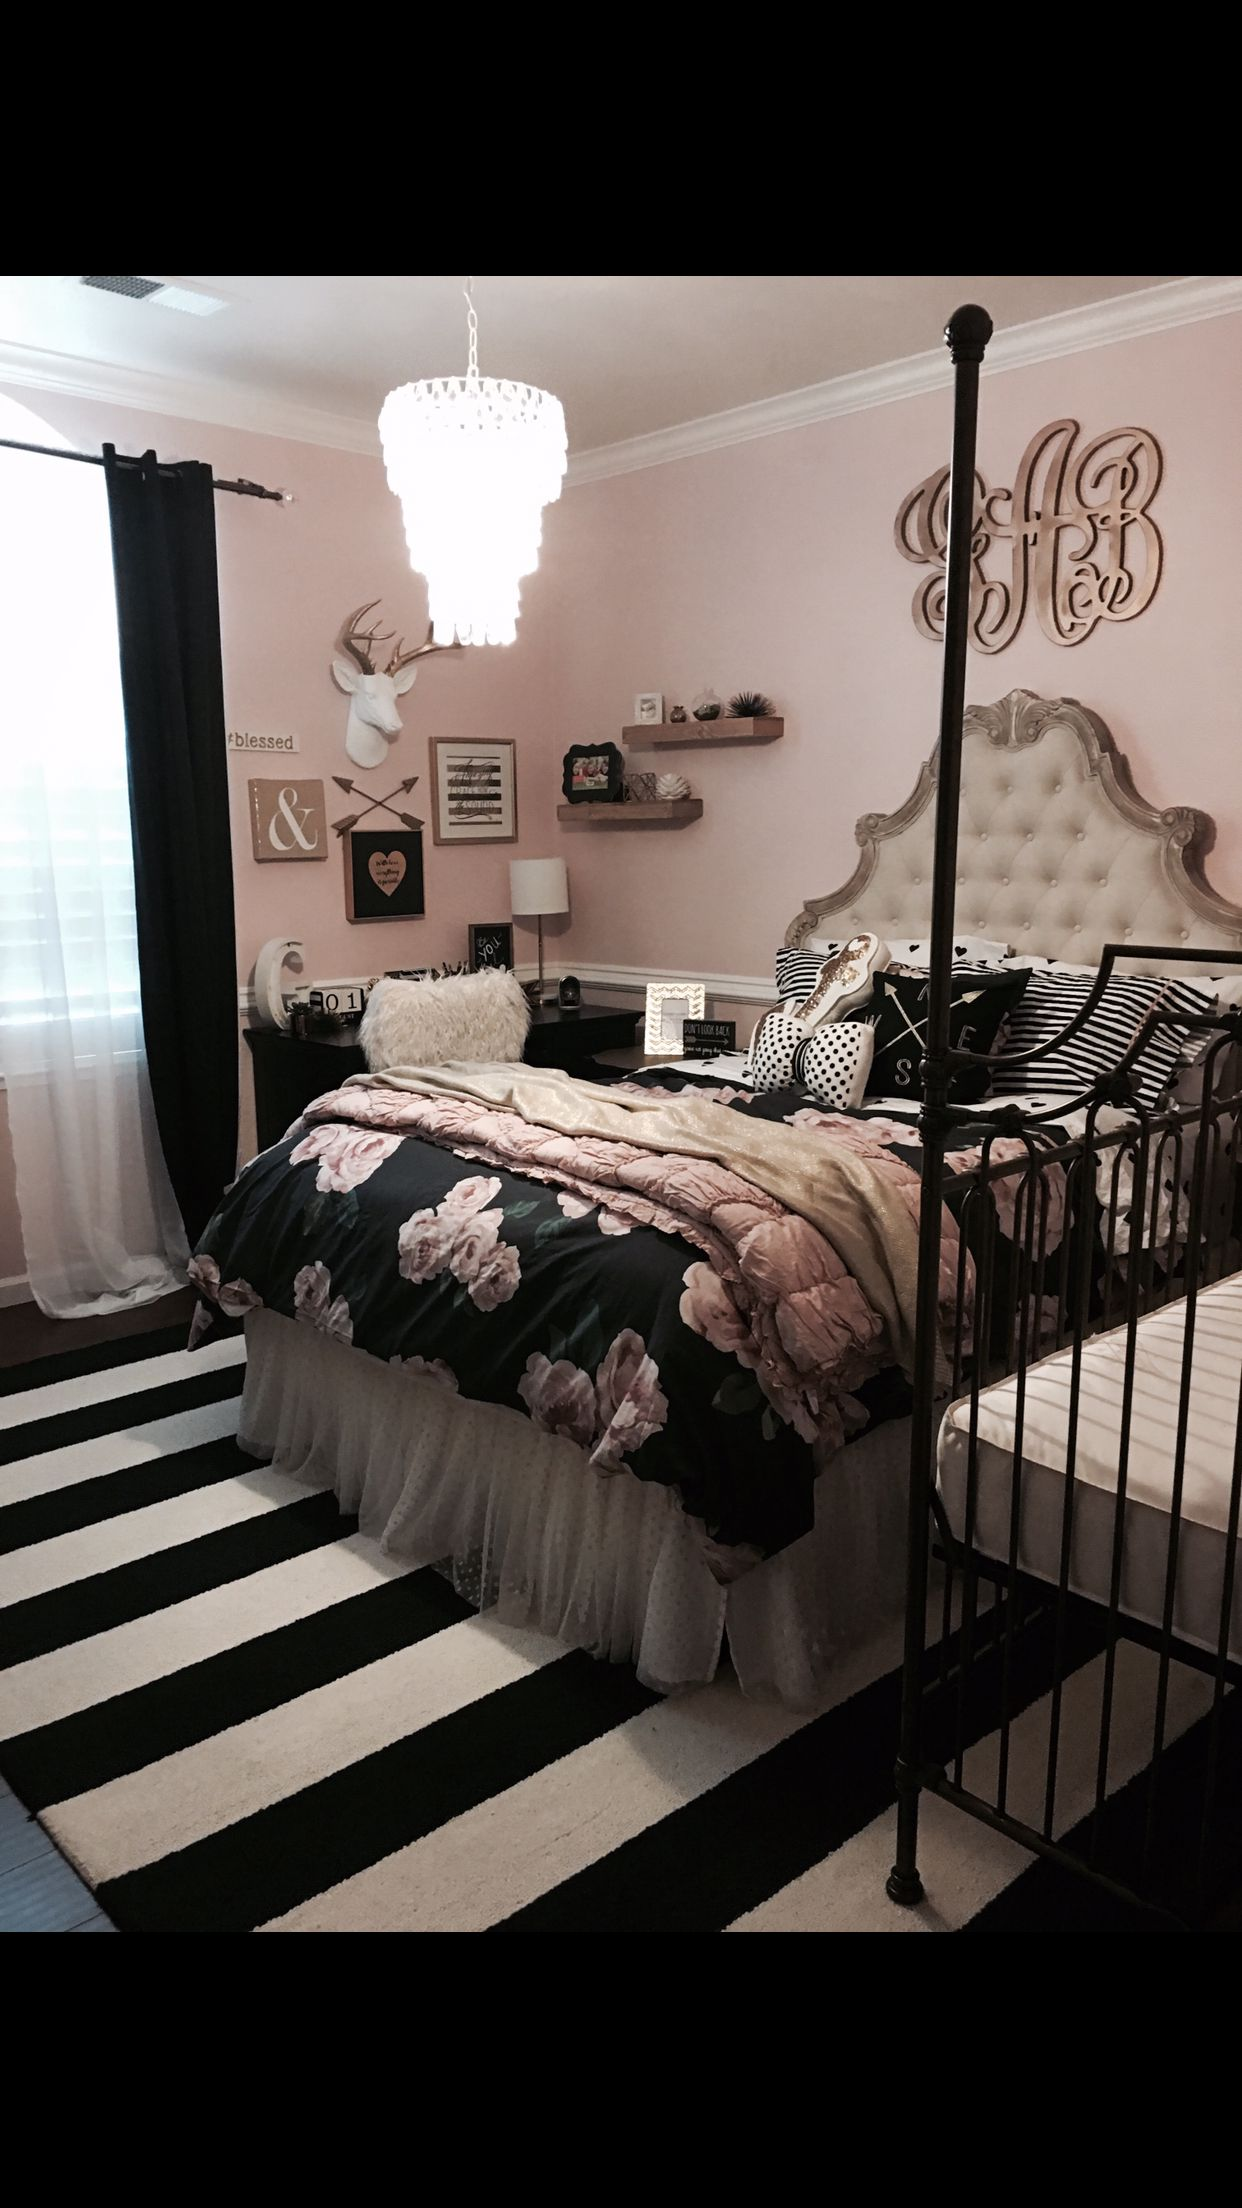 Colorful young girls rooms flower inspired teenage girls rooms ideas - Black Bedroom Ideas Inspiration For Master Bedroom Designs Pottery Barn Kidspottery Barn Teen